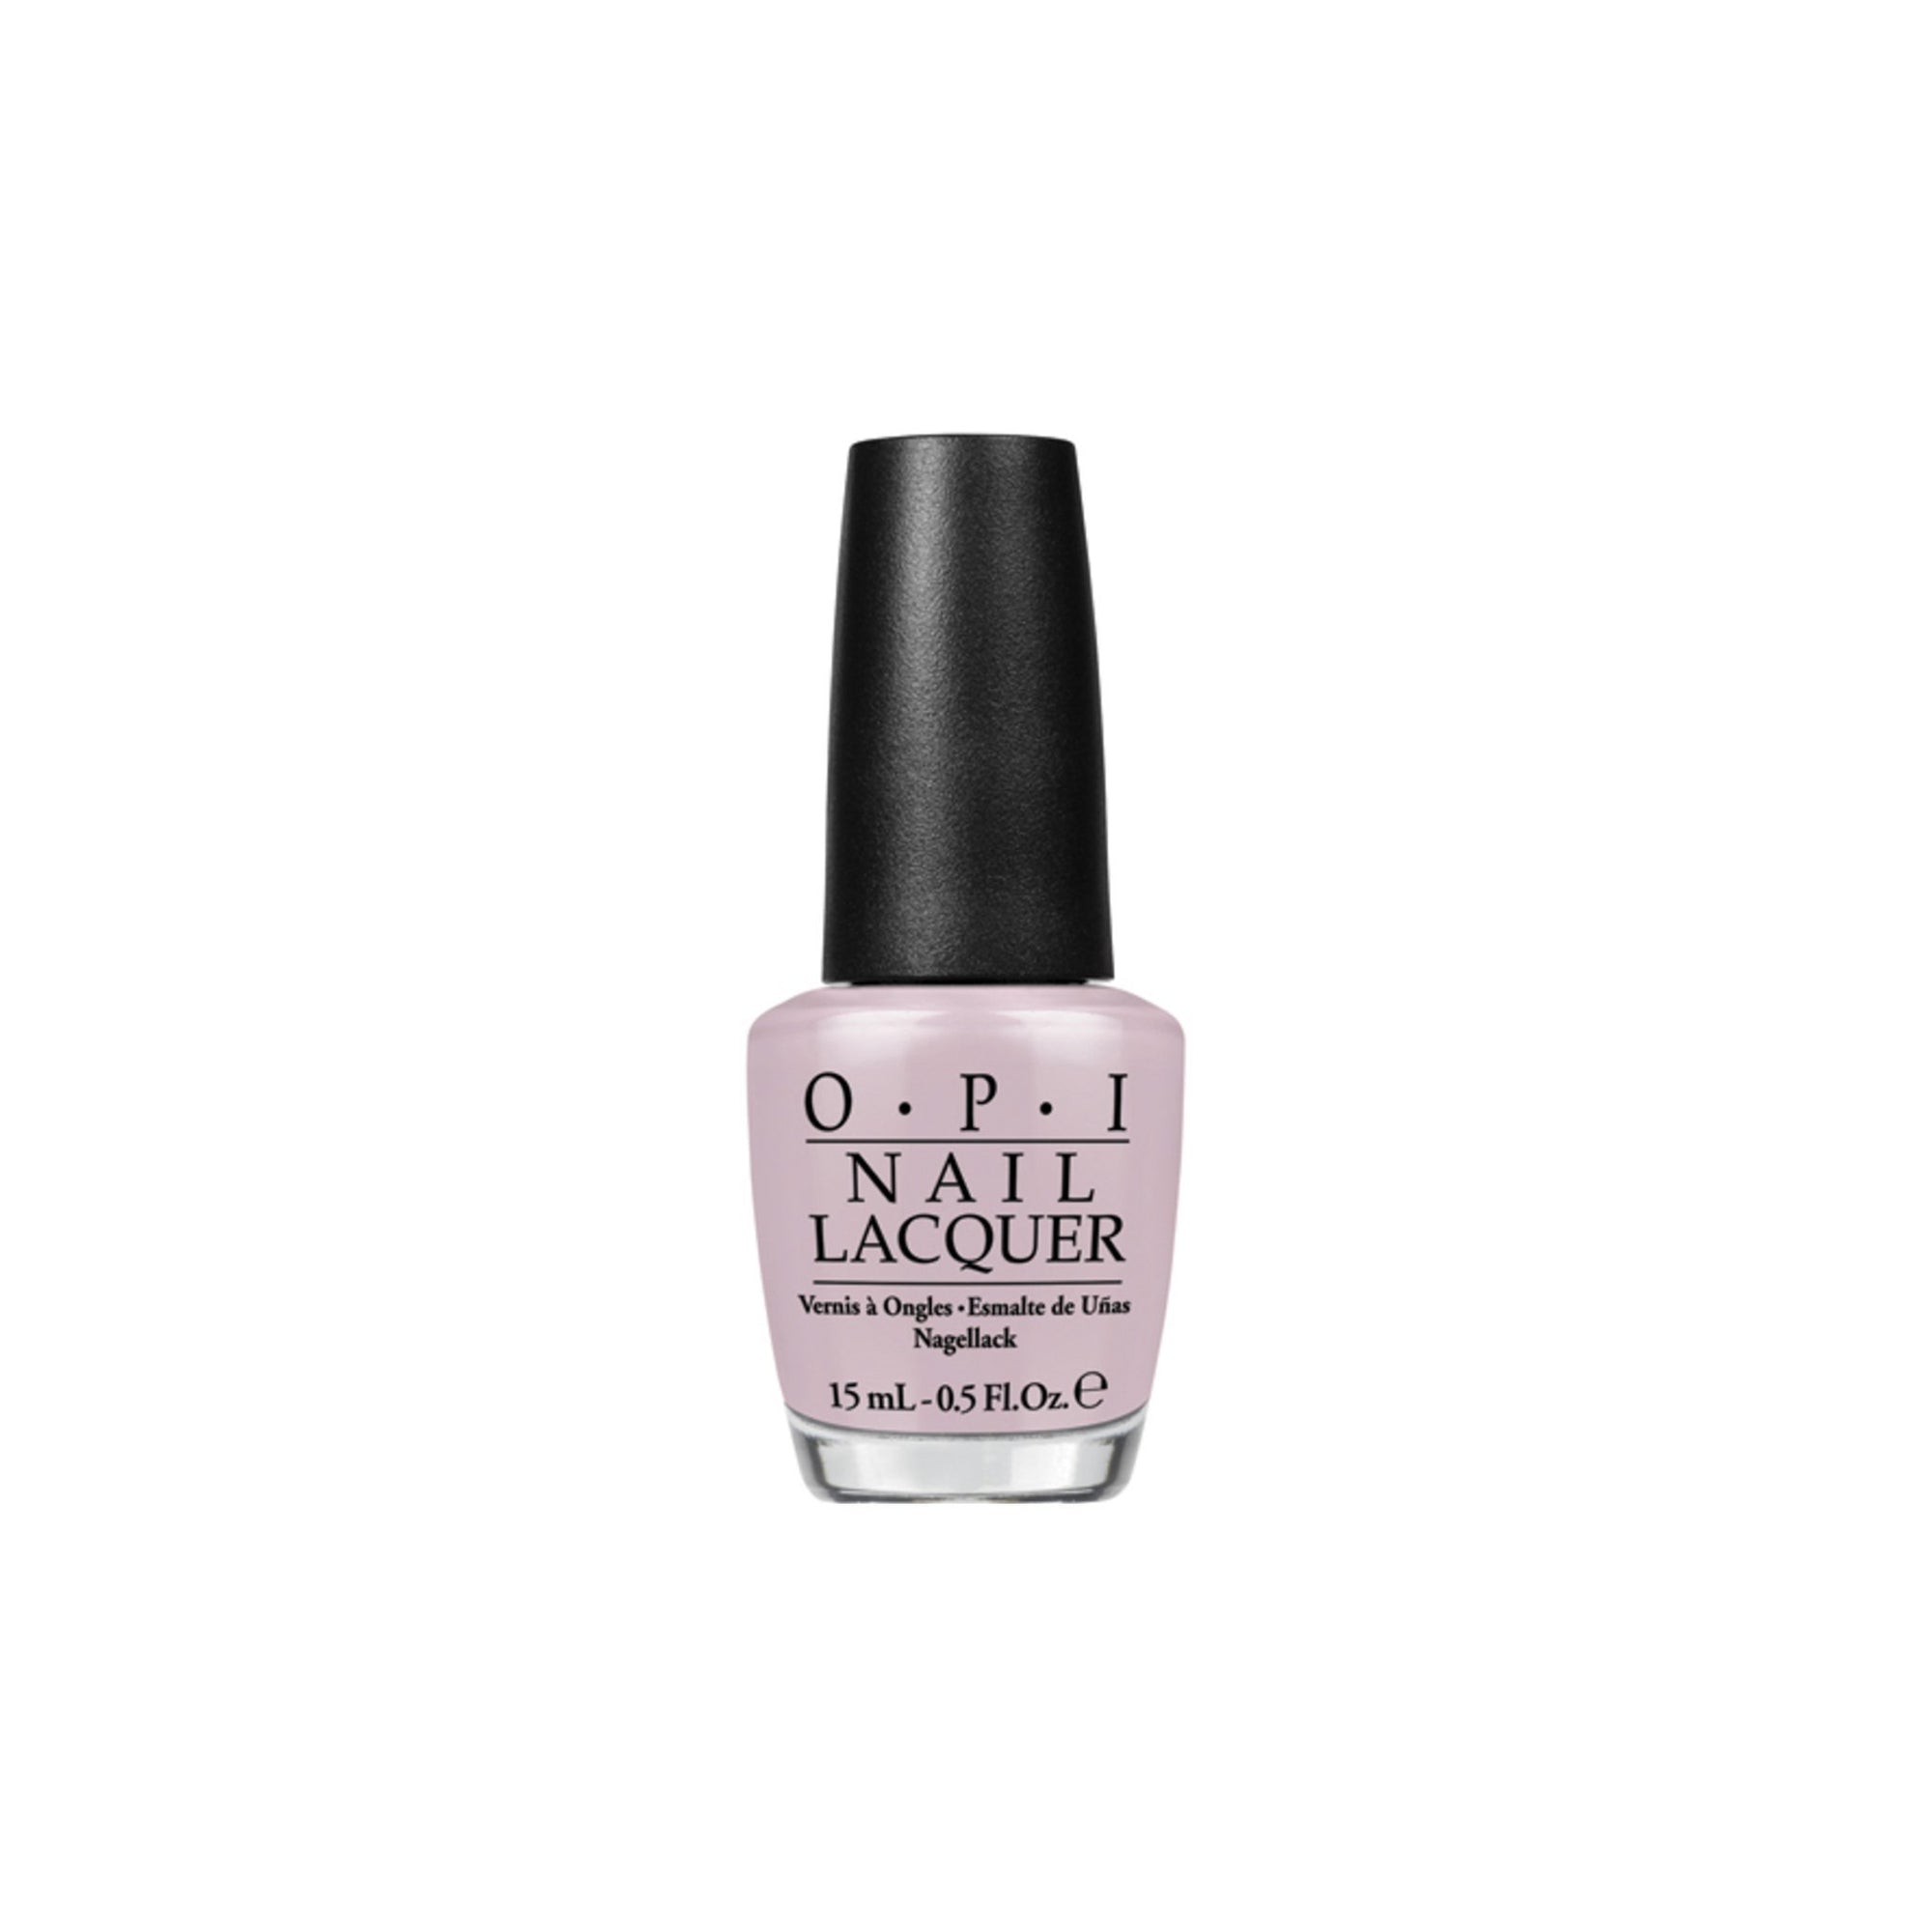 O.P.I Nail Lacquer - Don't Bossa Nova Me Around